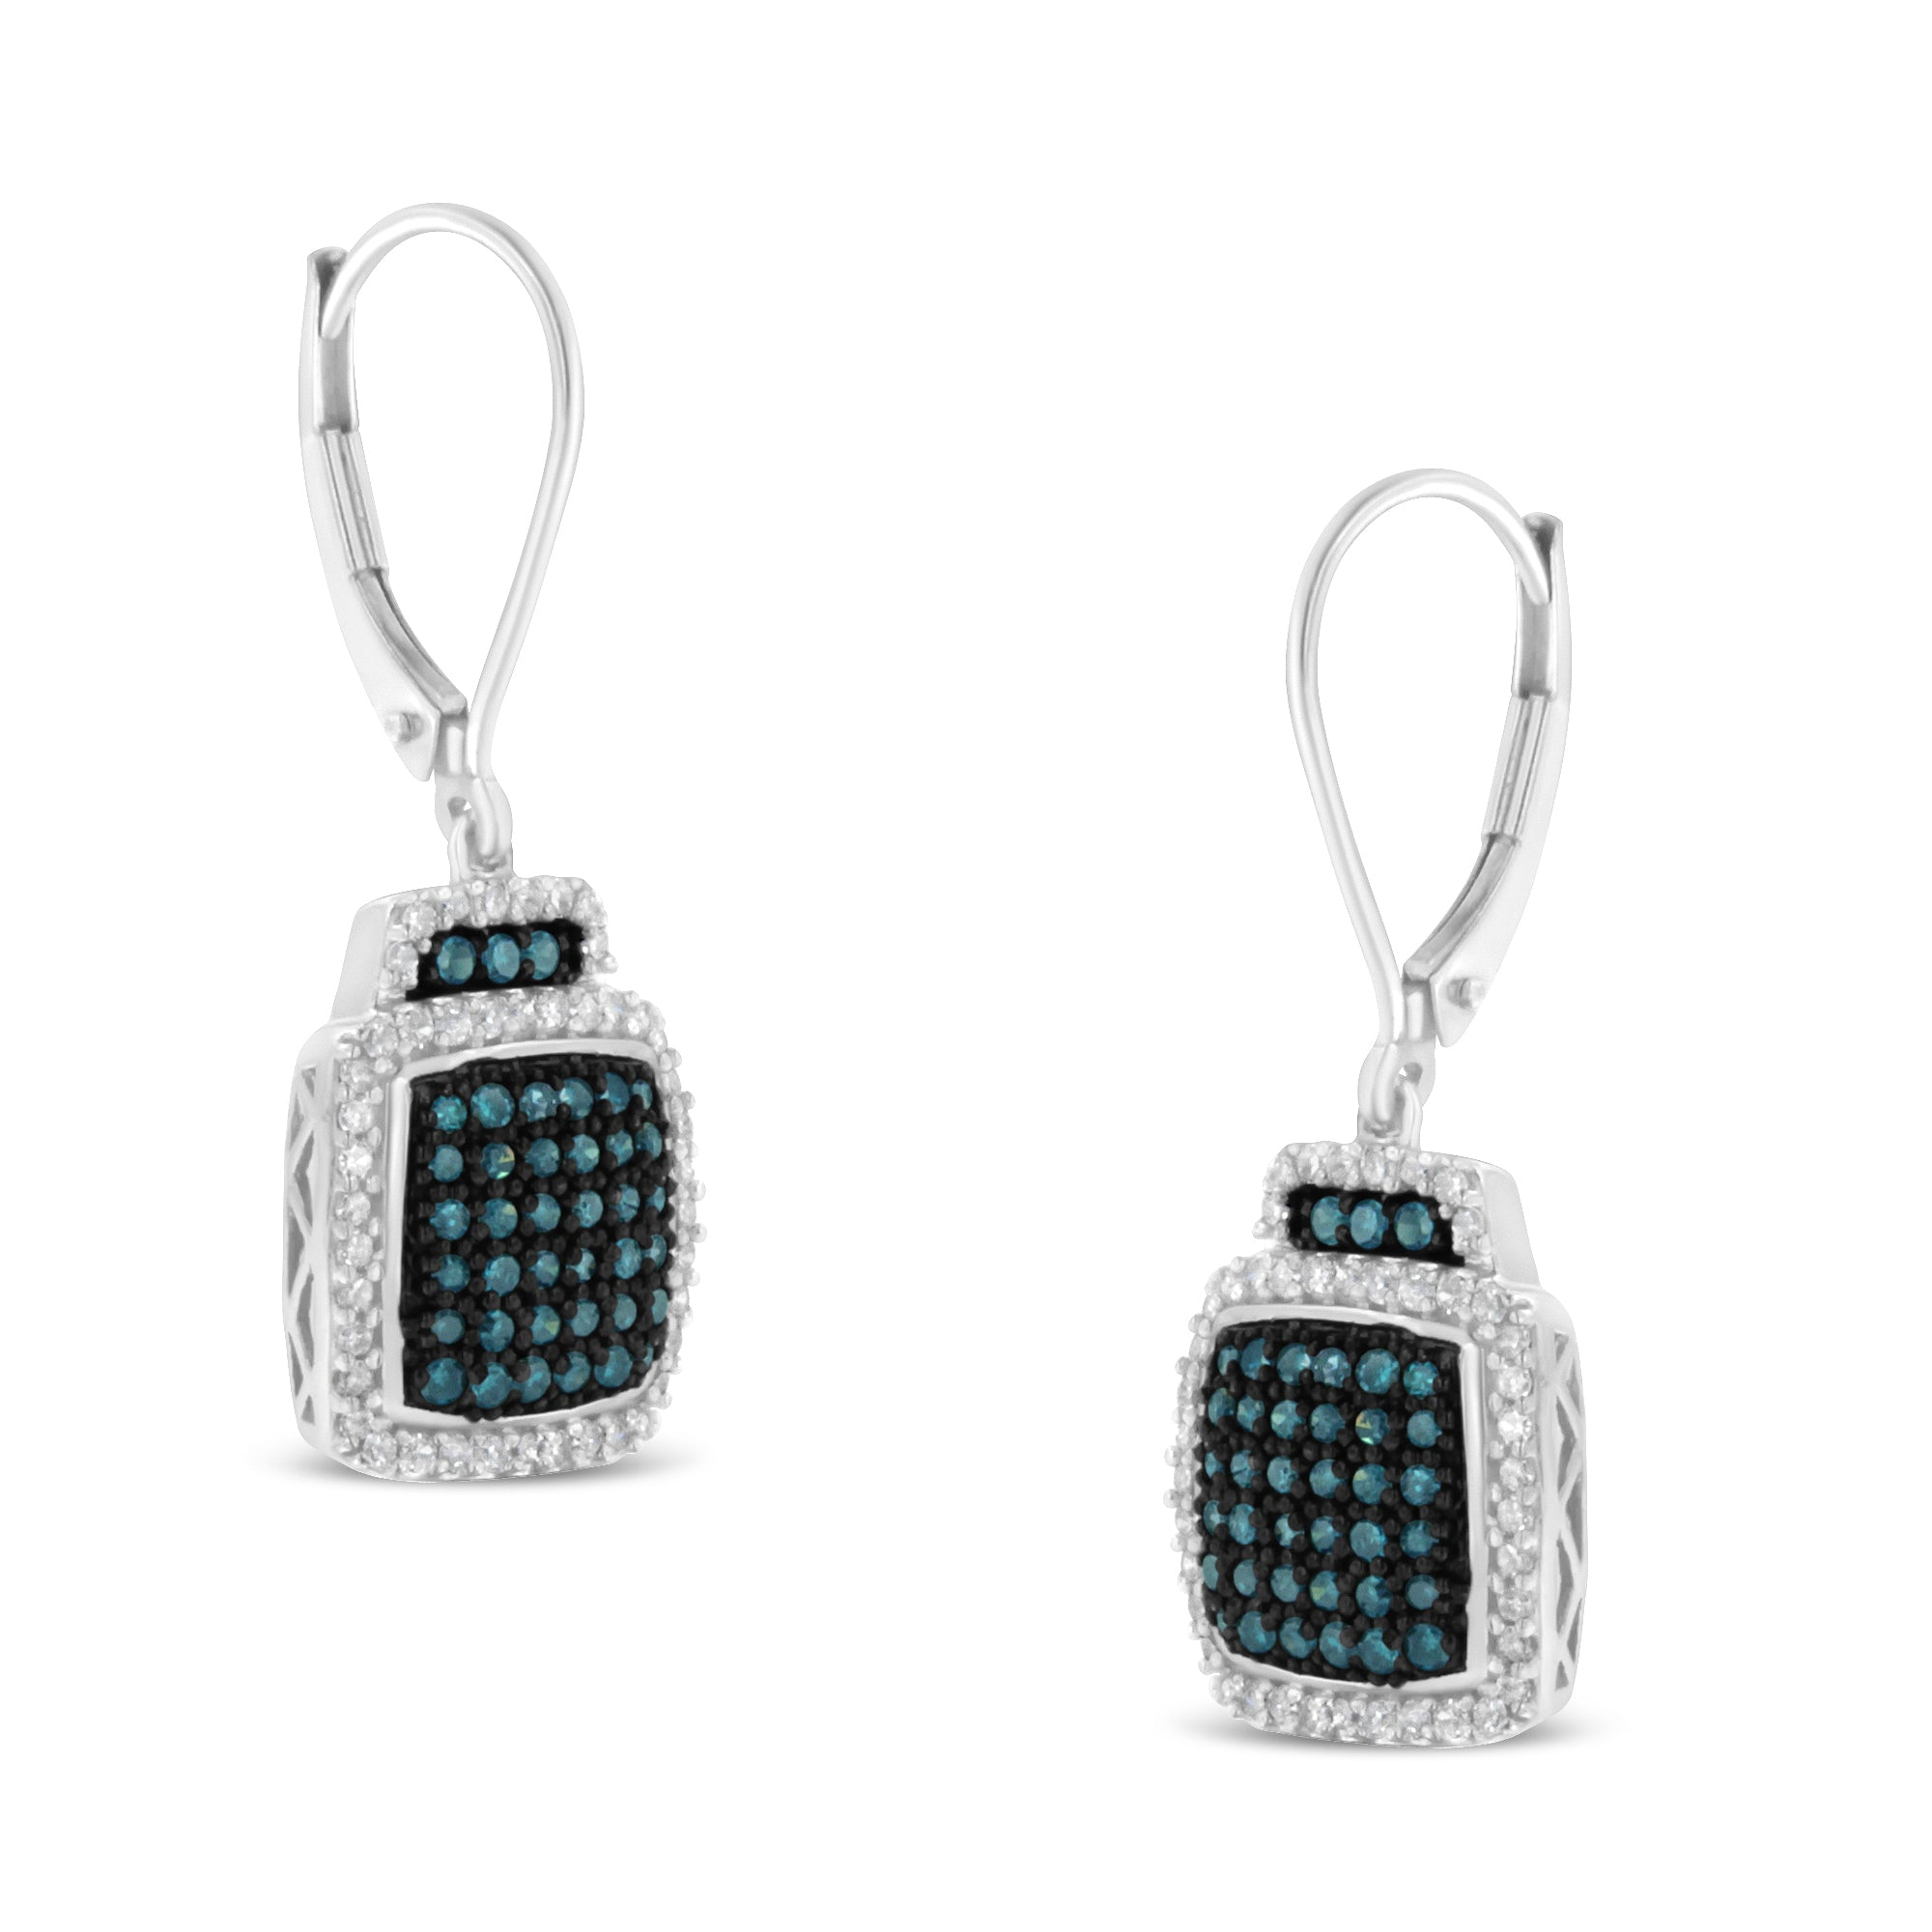 Treated Blue Diamond Square Dangle Earrings